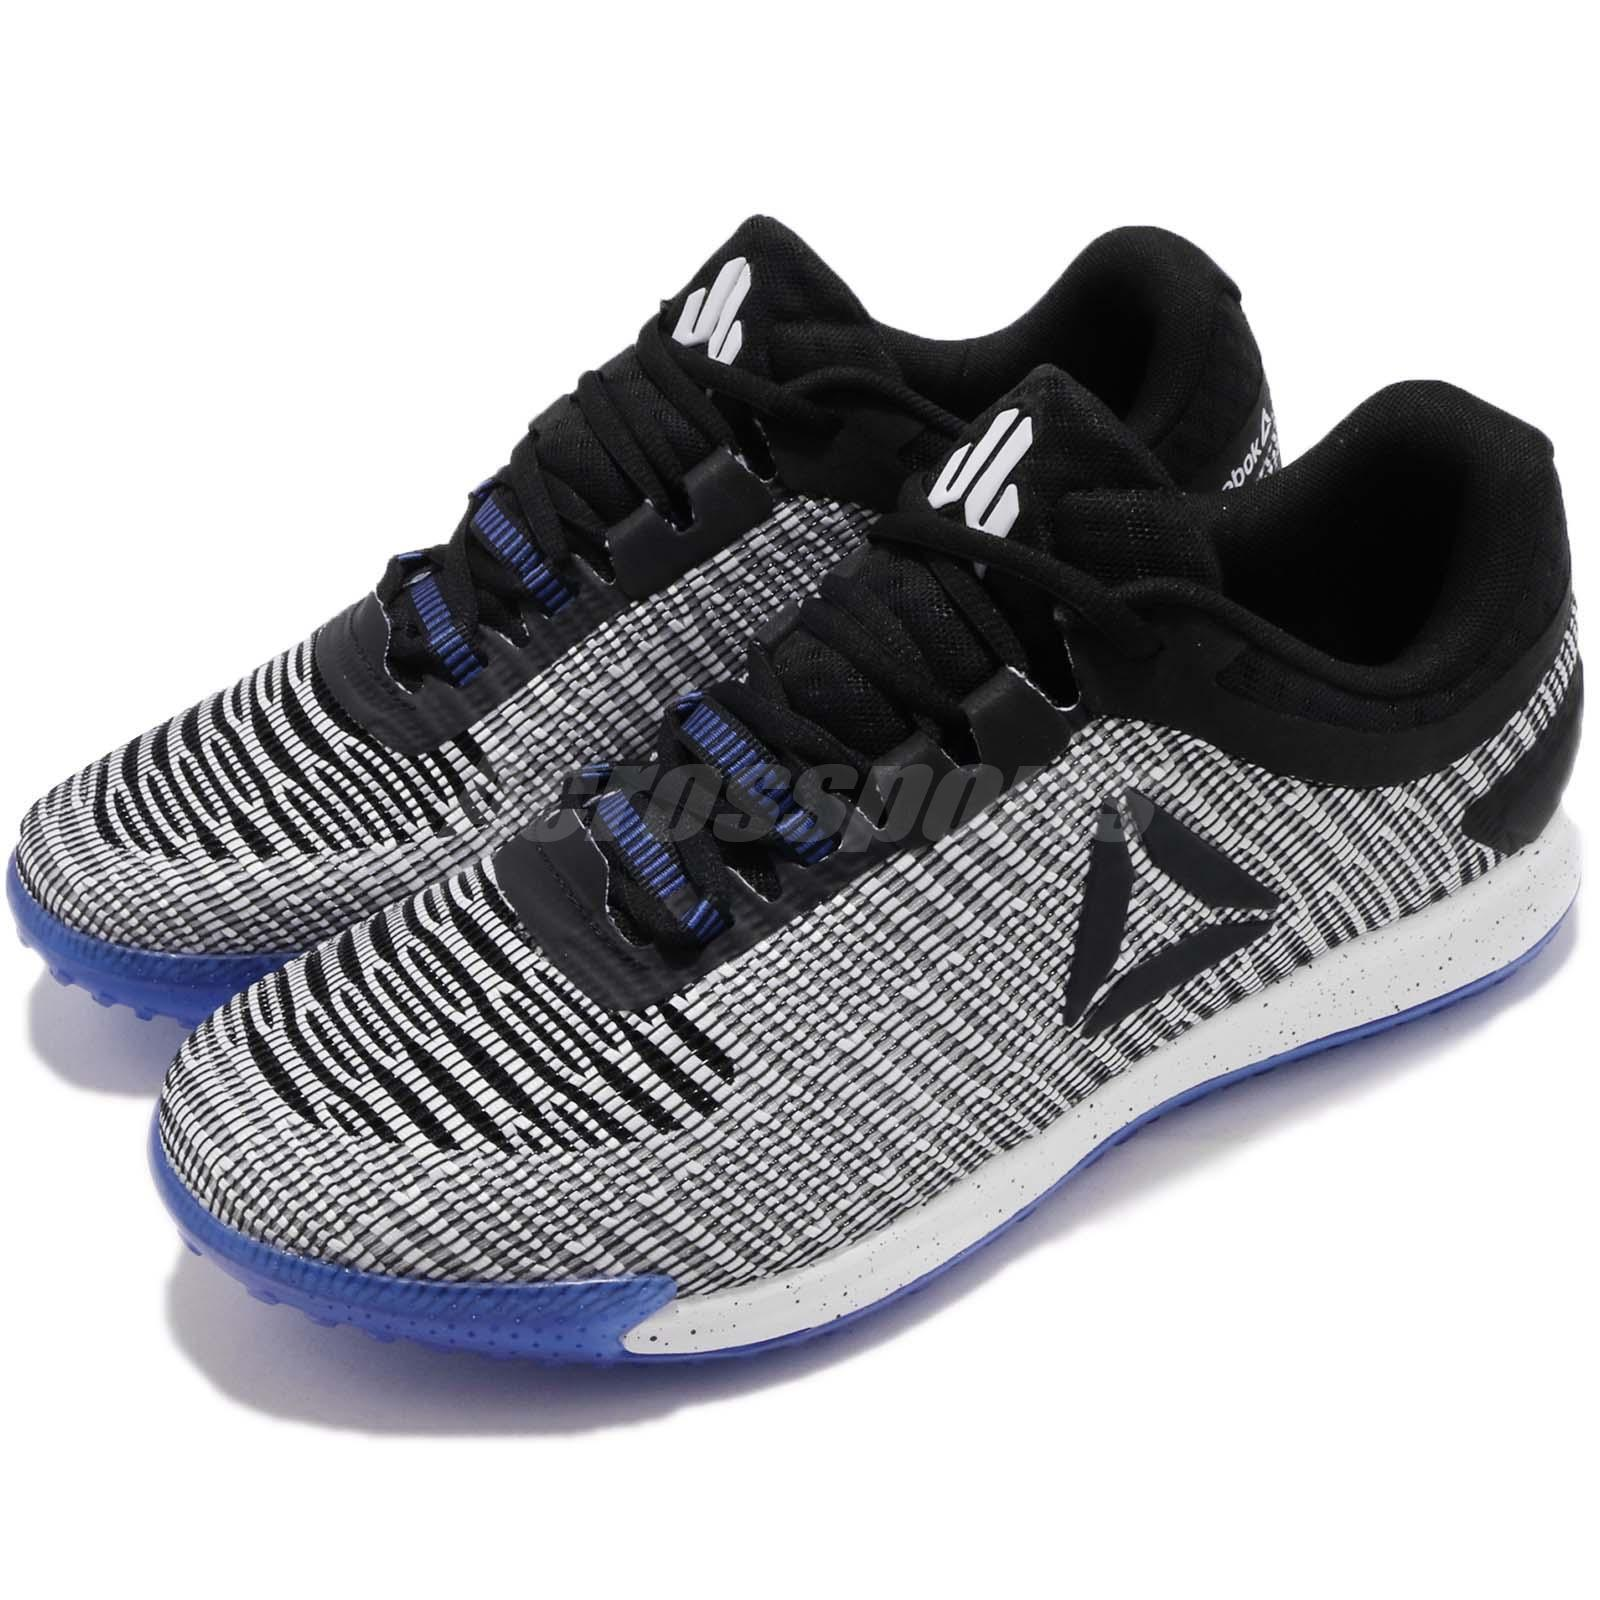 Reebok JJ II Low 2 Watt Black Blue  Shoes  Cross Training Gym Shoes  Trainers CN2220 ecbf61